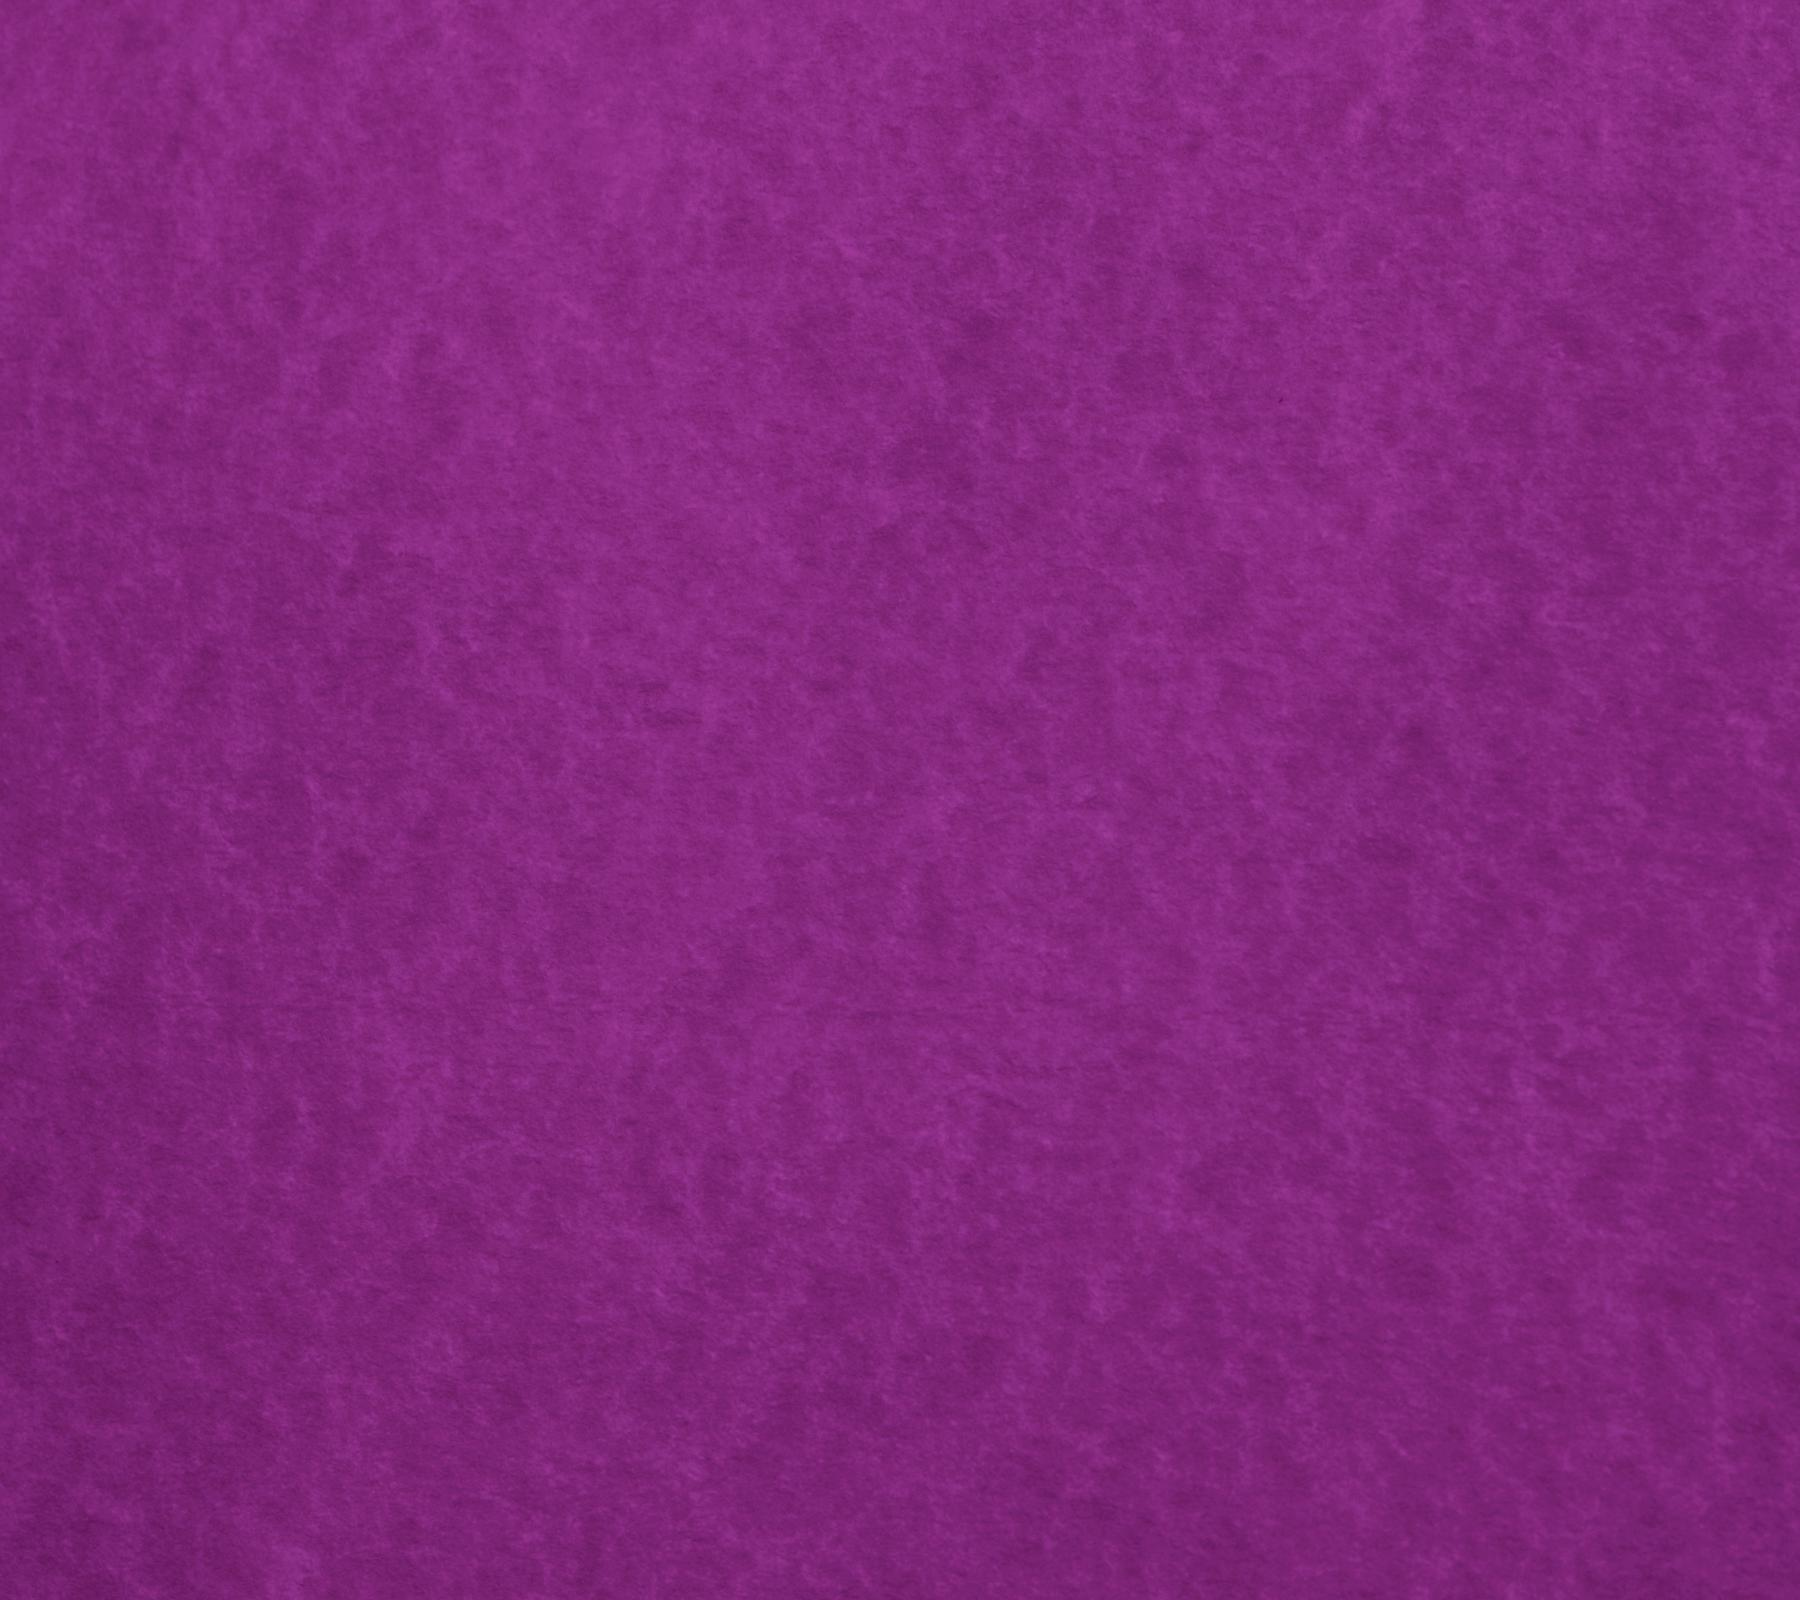 plum purple parchment paper background 1800x1600